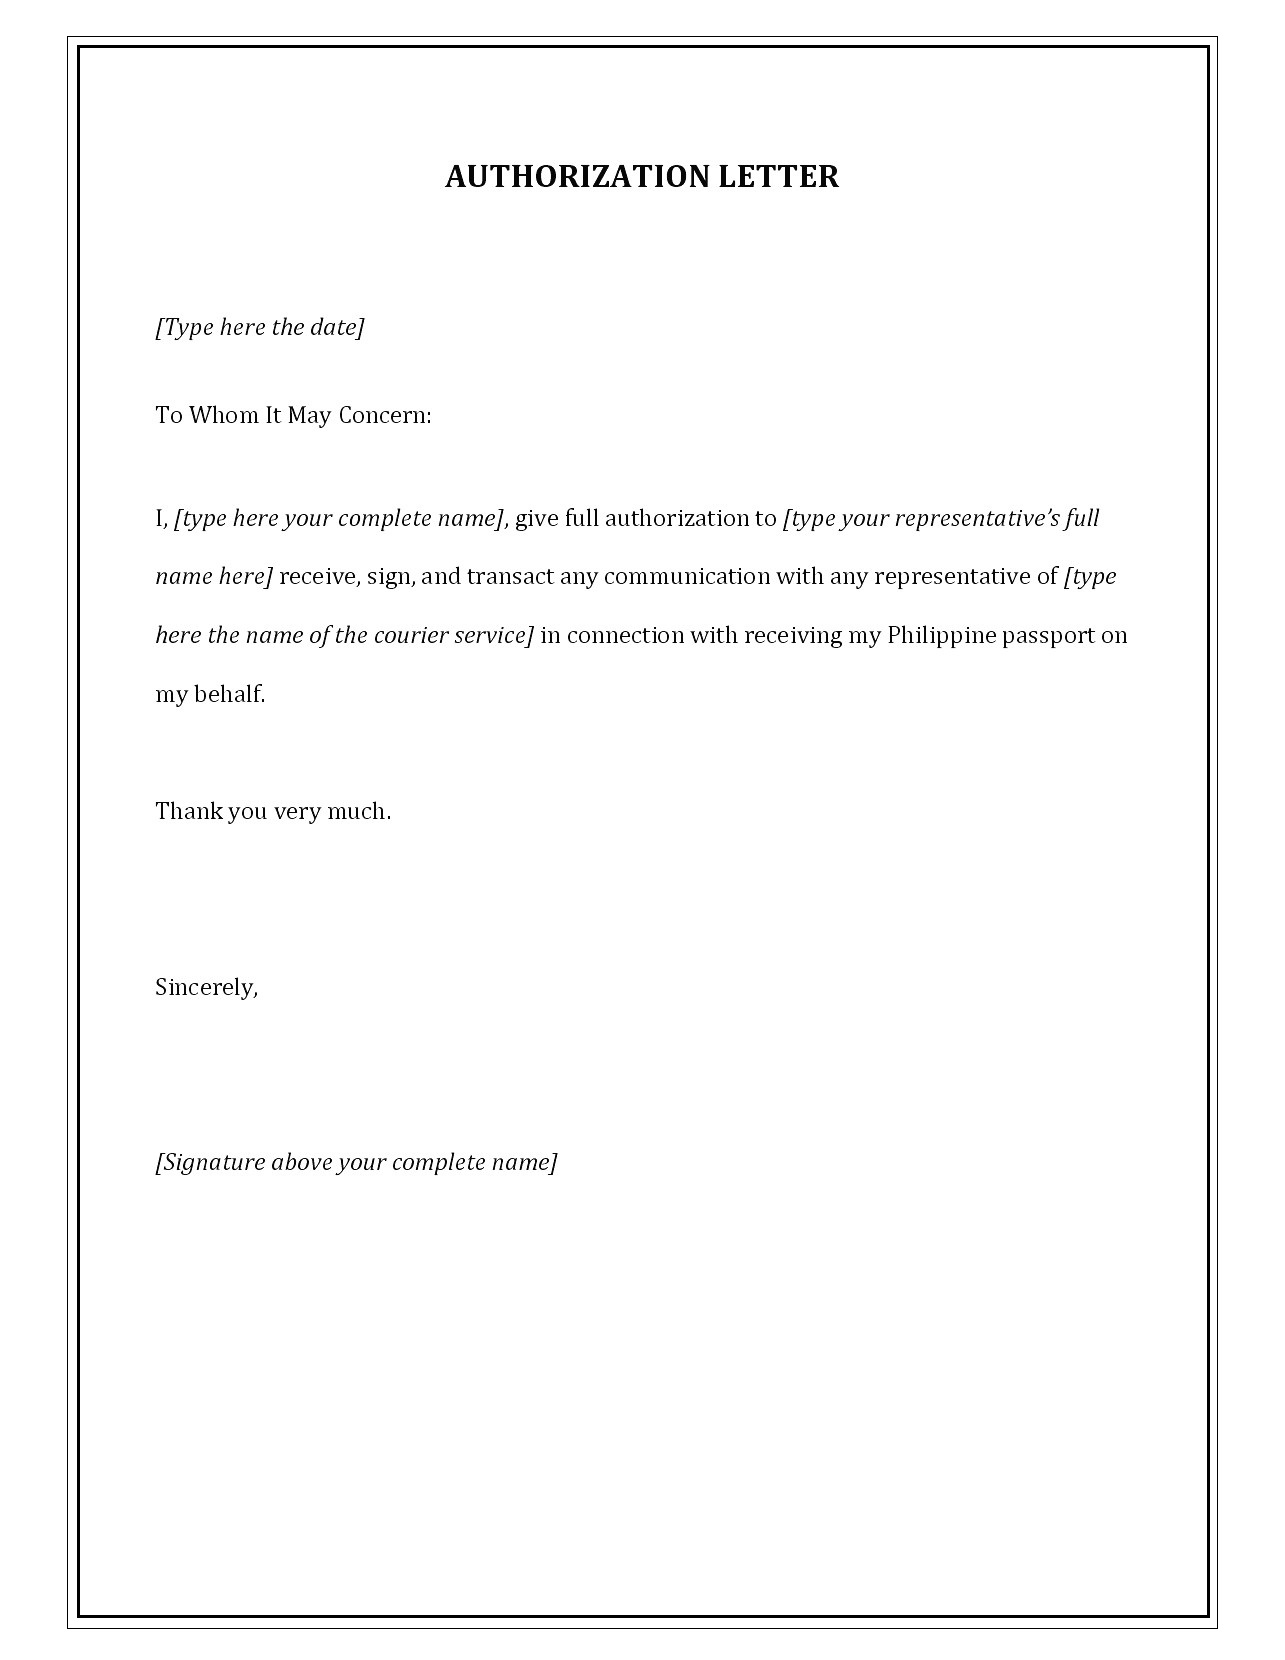 Sample Authorization Letter Template